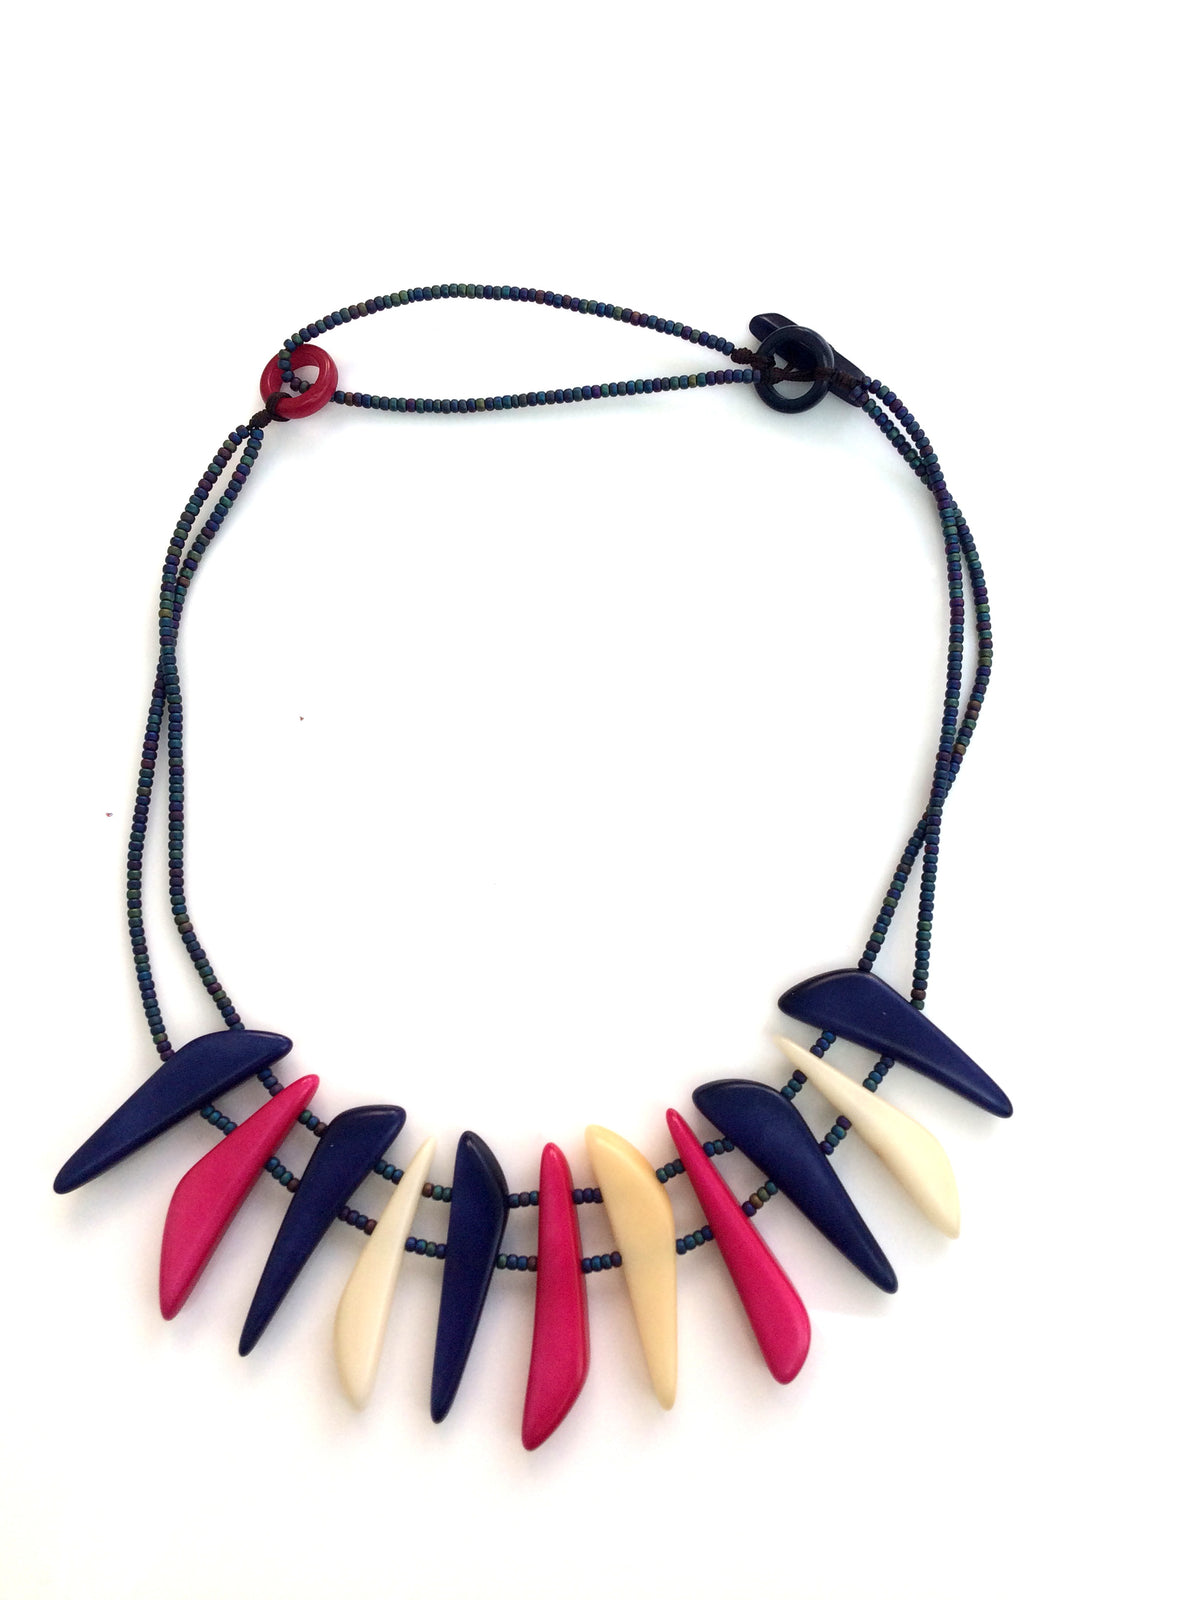 Cielo necklace - Navy, Pink & Ivory Tones